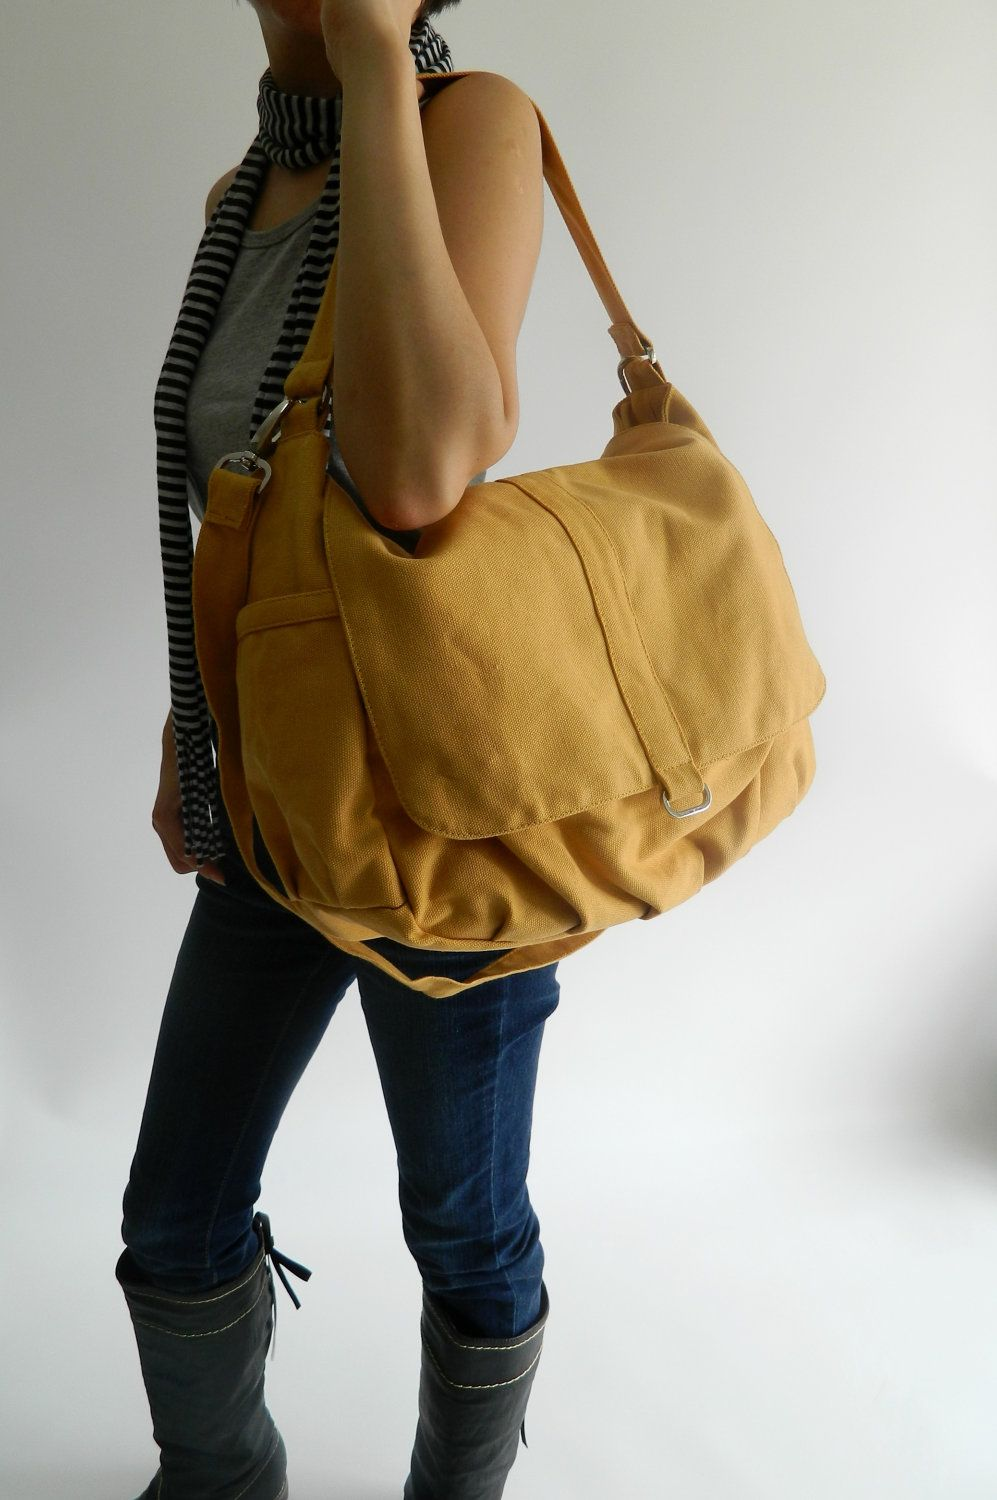 4th ANNIVERSARY 15% SALE - Daniel in mustard - canvas - zipper closure   Shoulder  bag   Cross Body Messenger. 49.00 6a82b01eae974